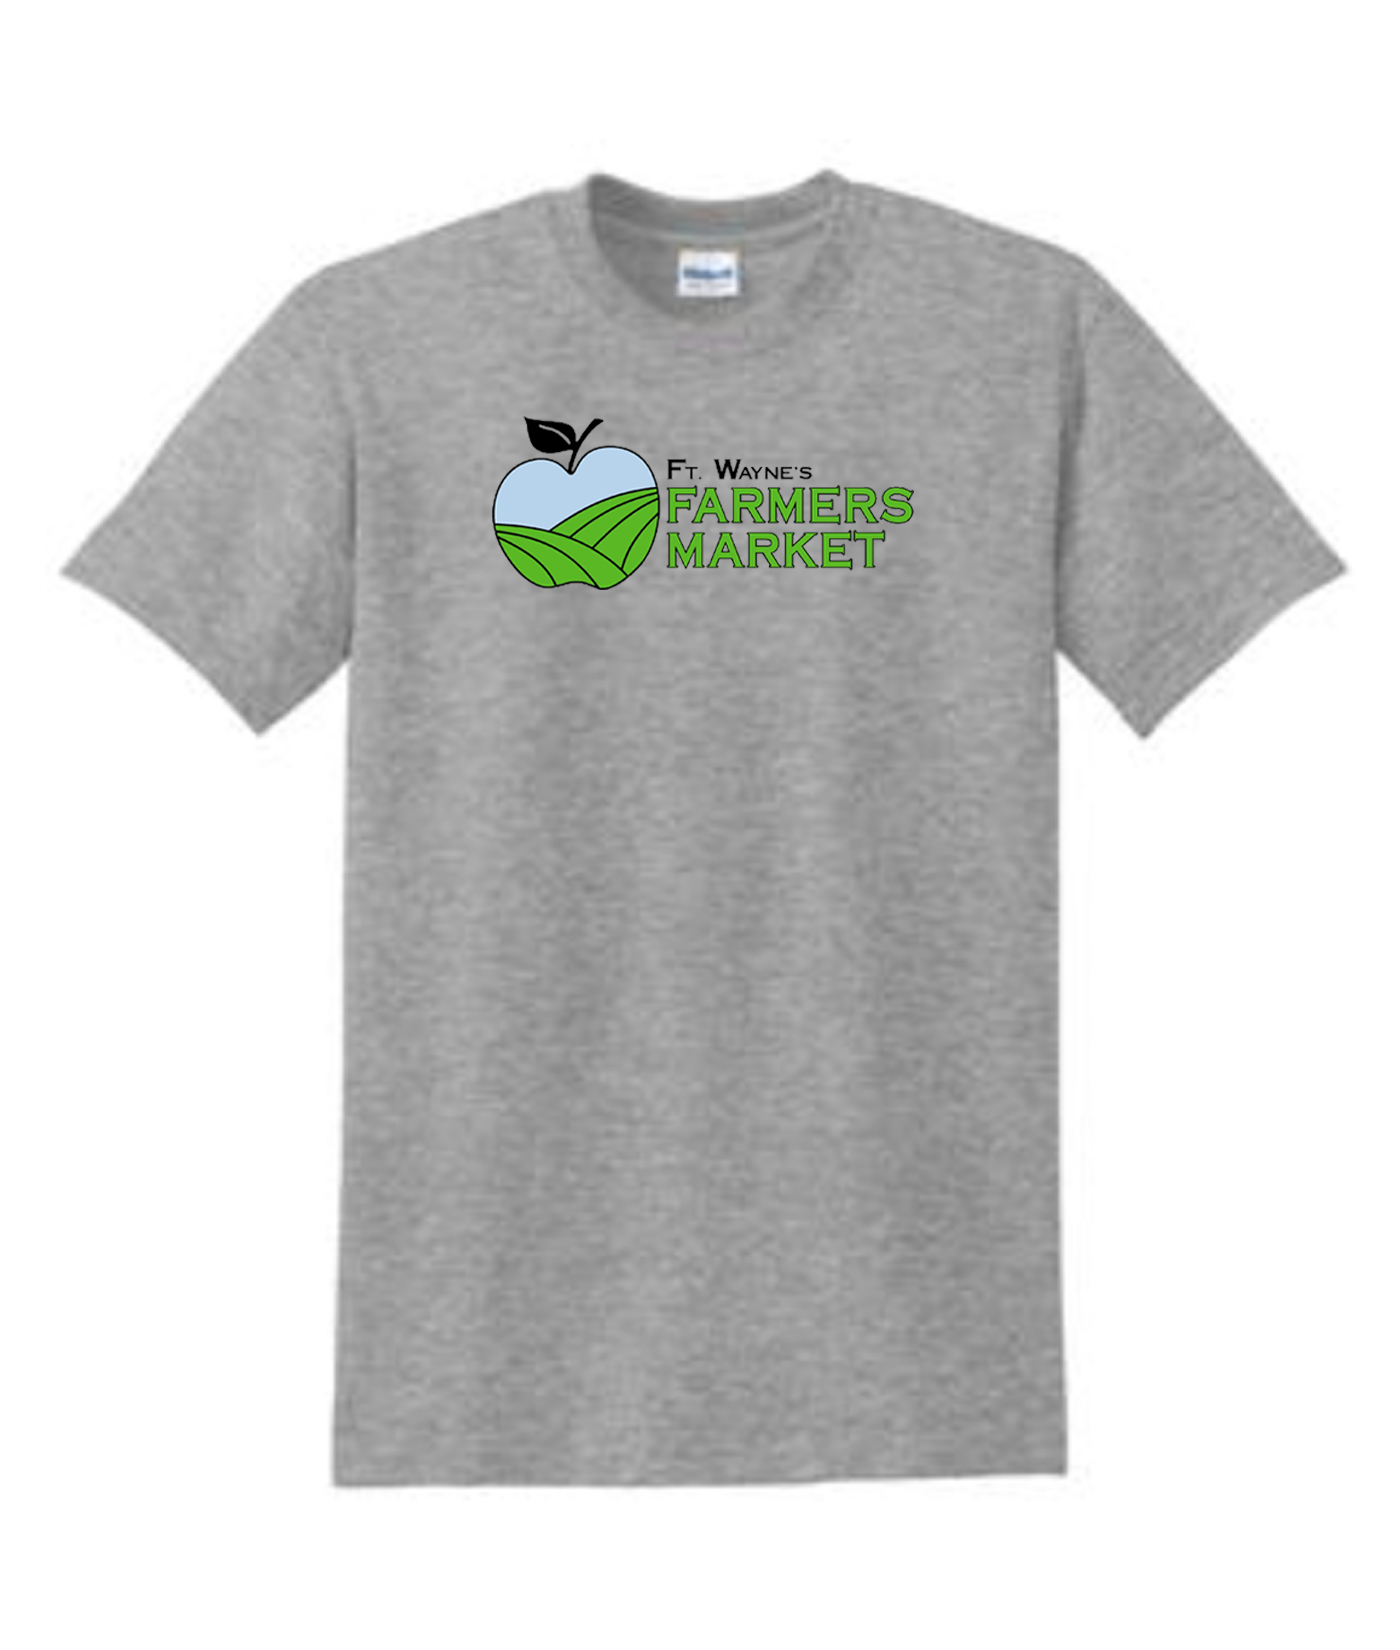 Grey Cotton T Shirt Fort Wayne Farmers Market Mens Youth